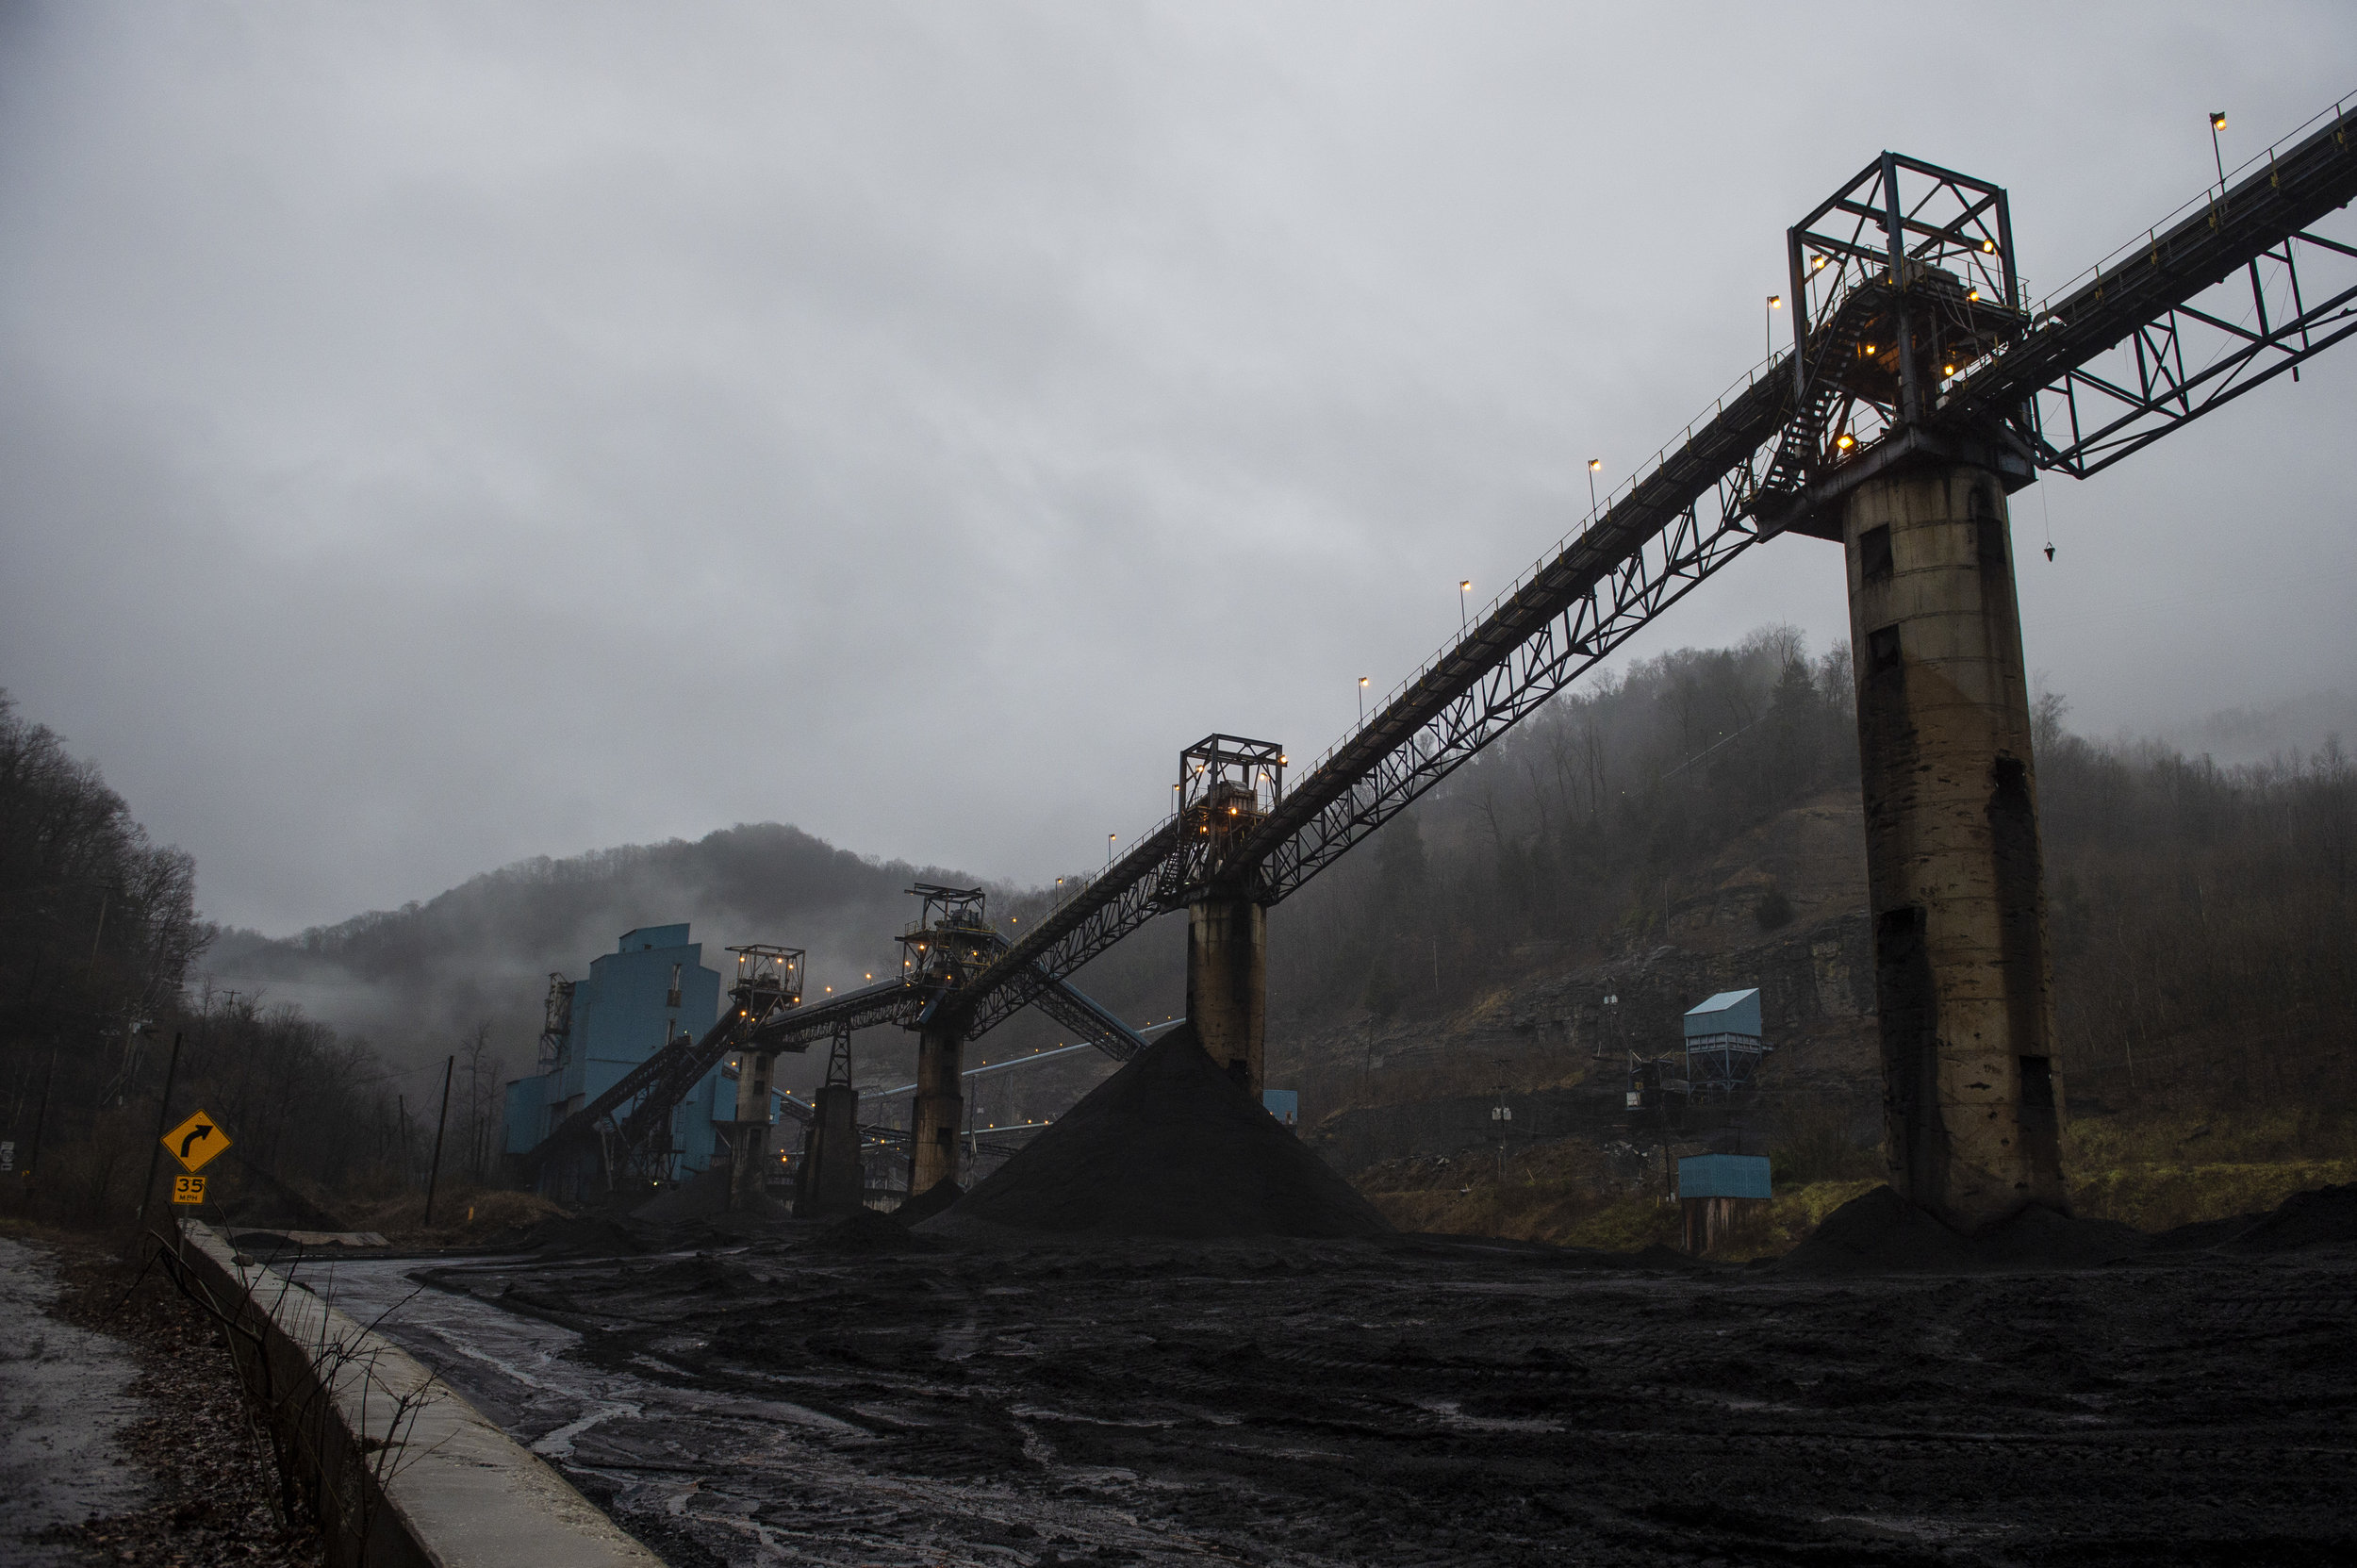 Rain or snow, fog or ice, a coal processing plant along Kentucky Highway 194 continues to operate on Friday, January 17.